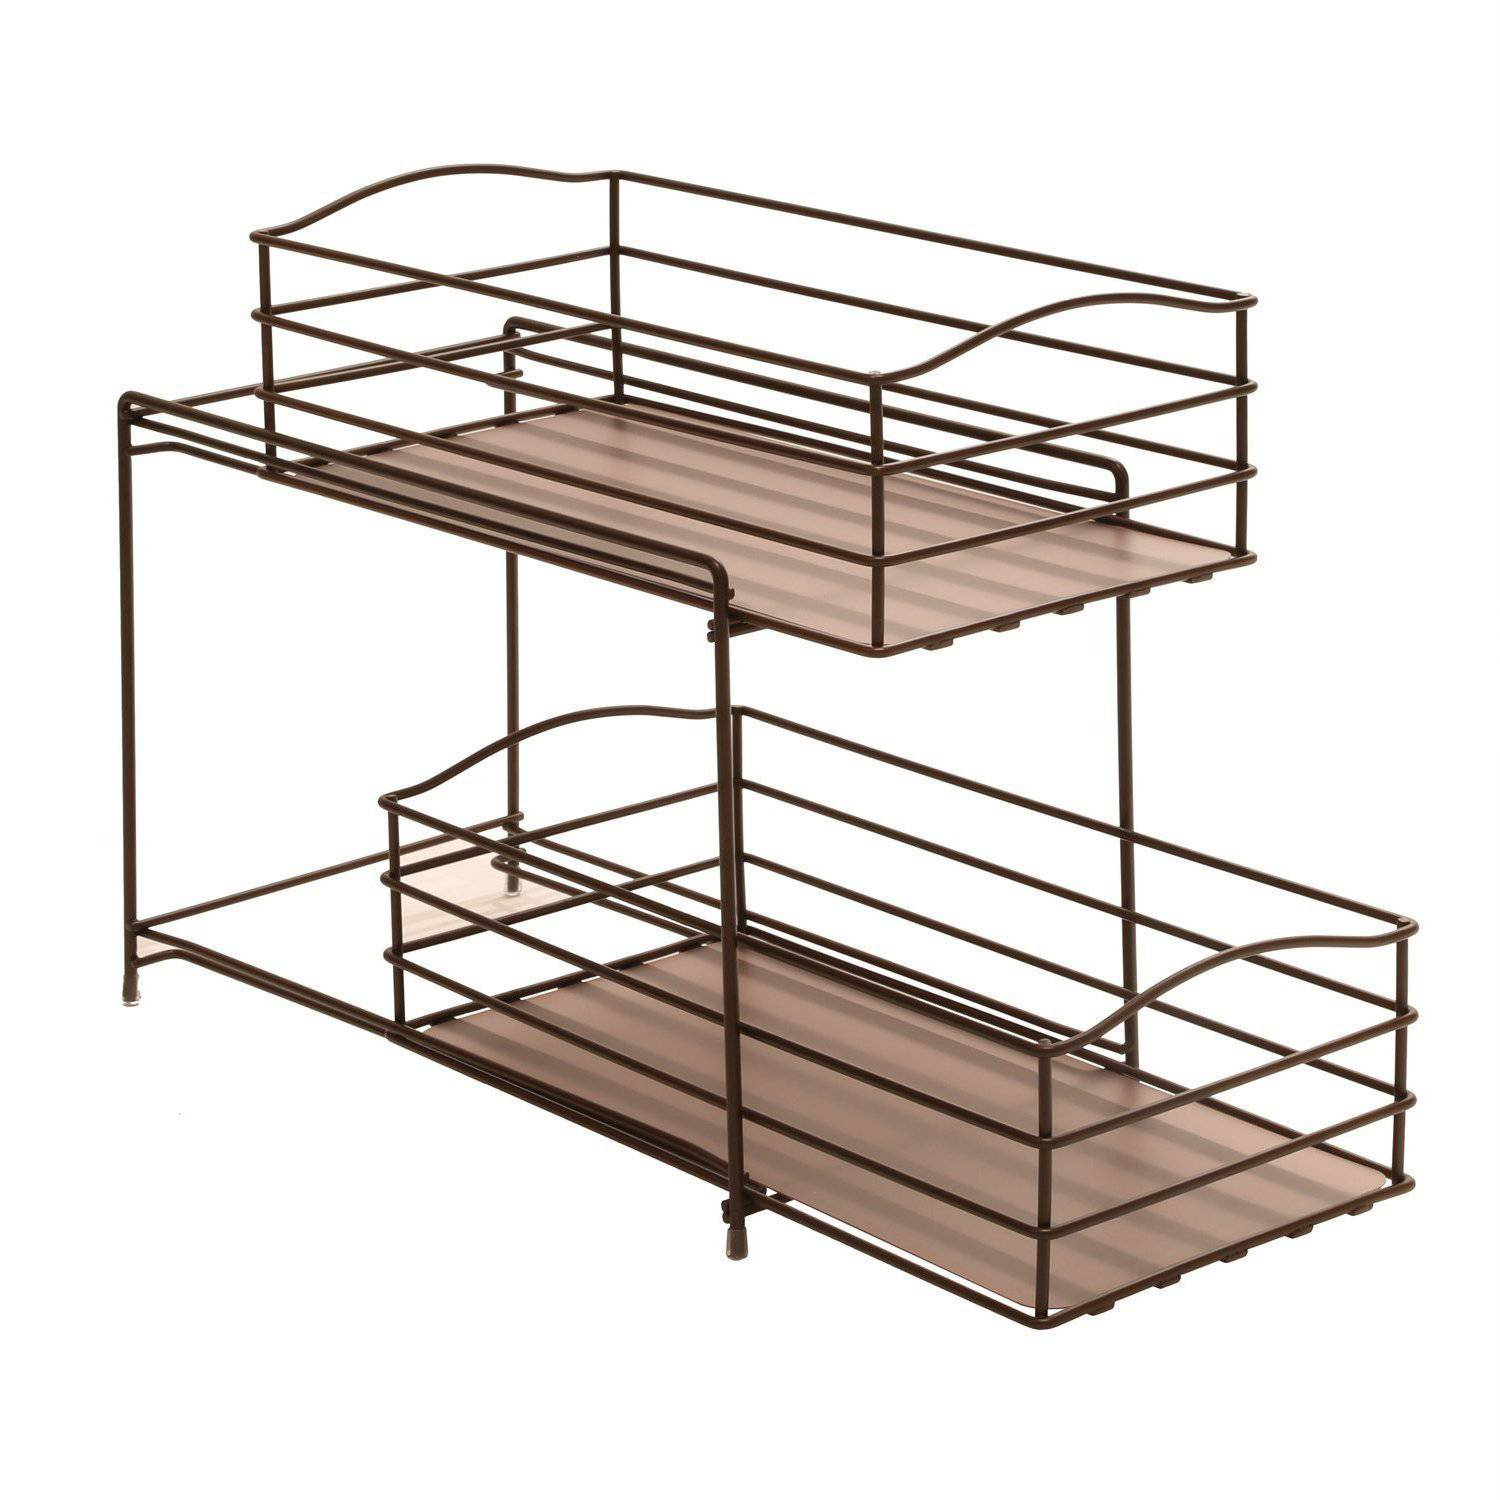 Seville Clics 2 Tier Sliding Basket Kitchen Cabinet Organizer Bronze